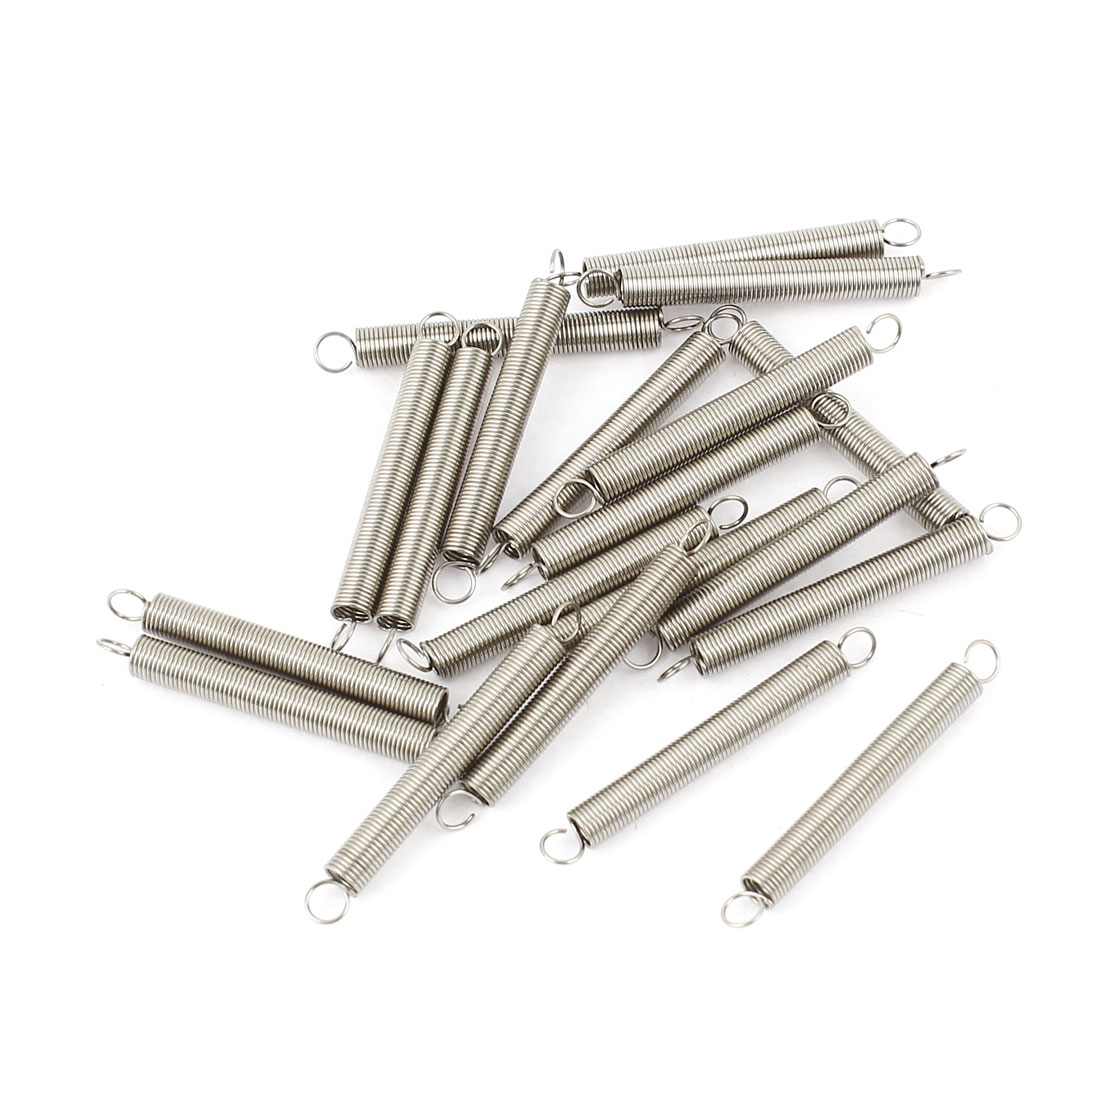 "0.14"" OD x 0.016"" Wire Dia x 1"" Long Extension Spring Connectors 20Pcs"